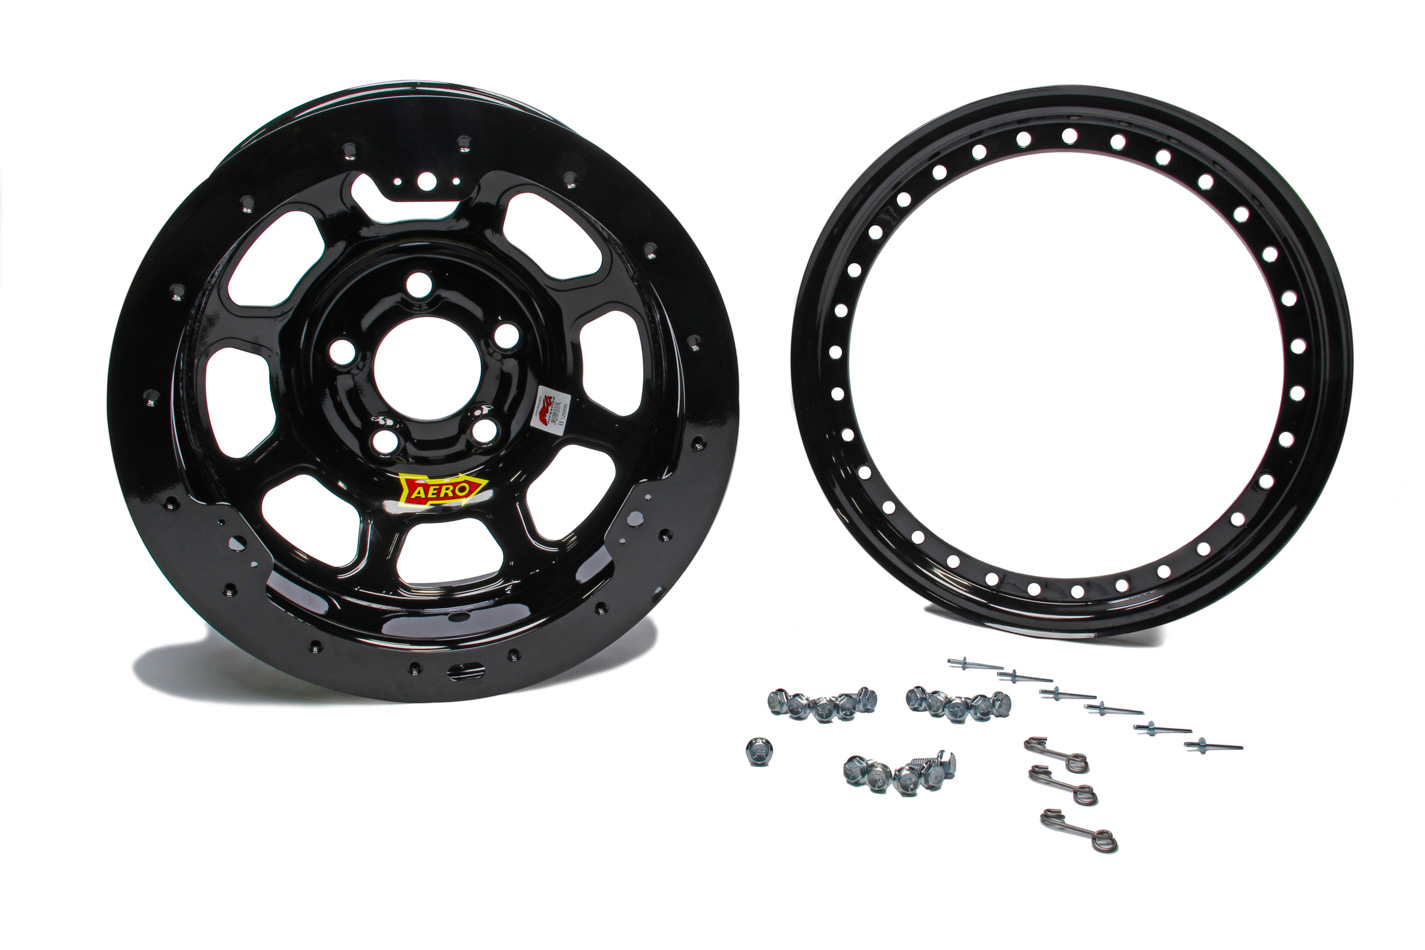 Aero Race 13x8 2in. 4.25 Black Beadlock Wheel